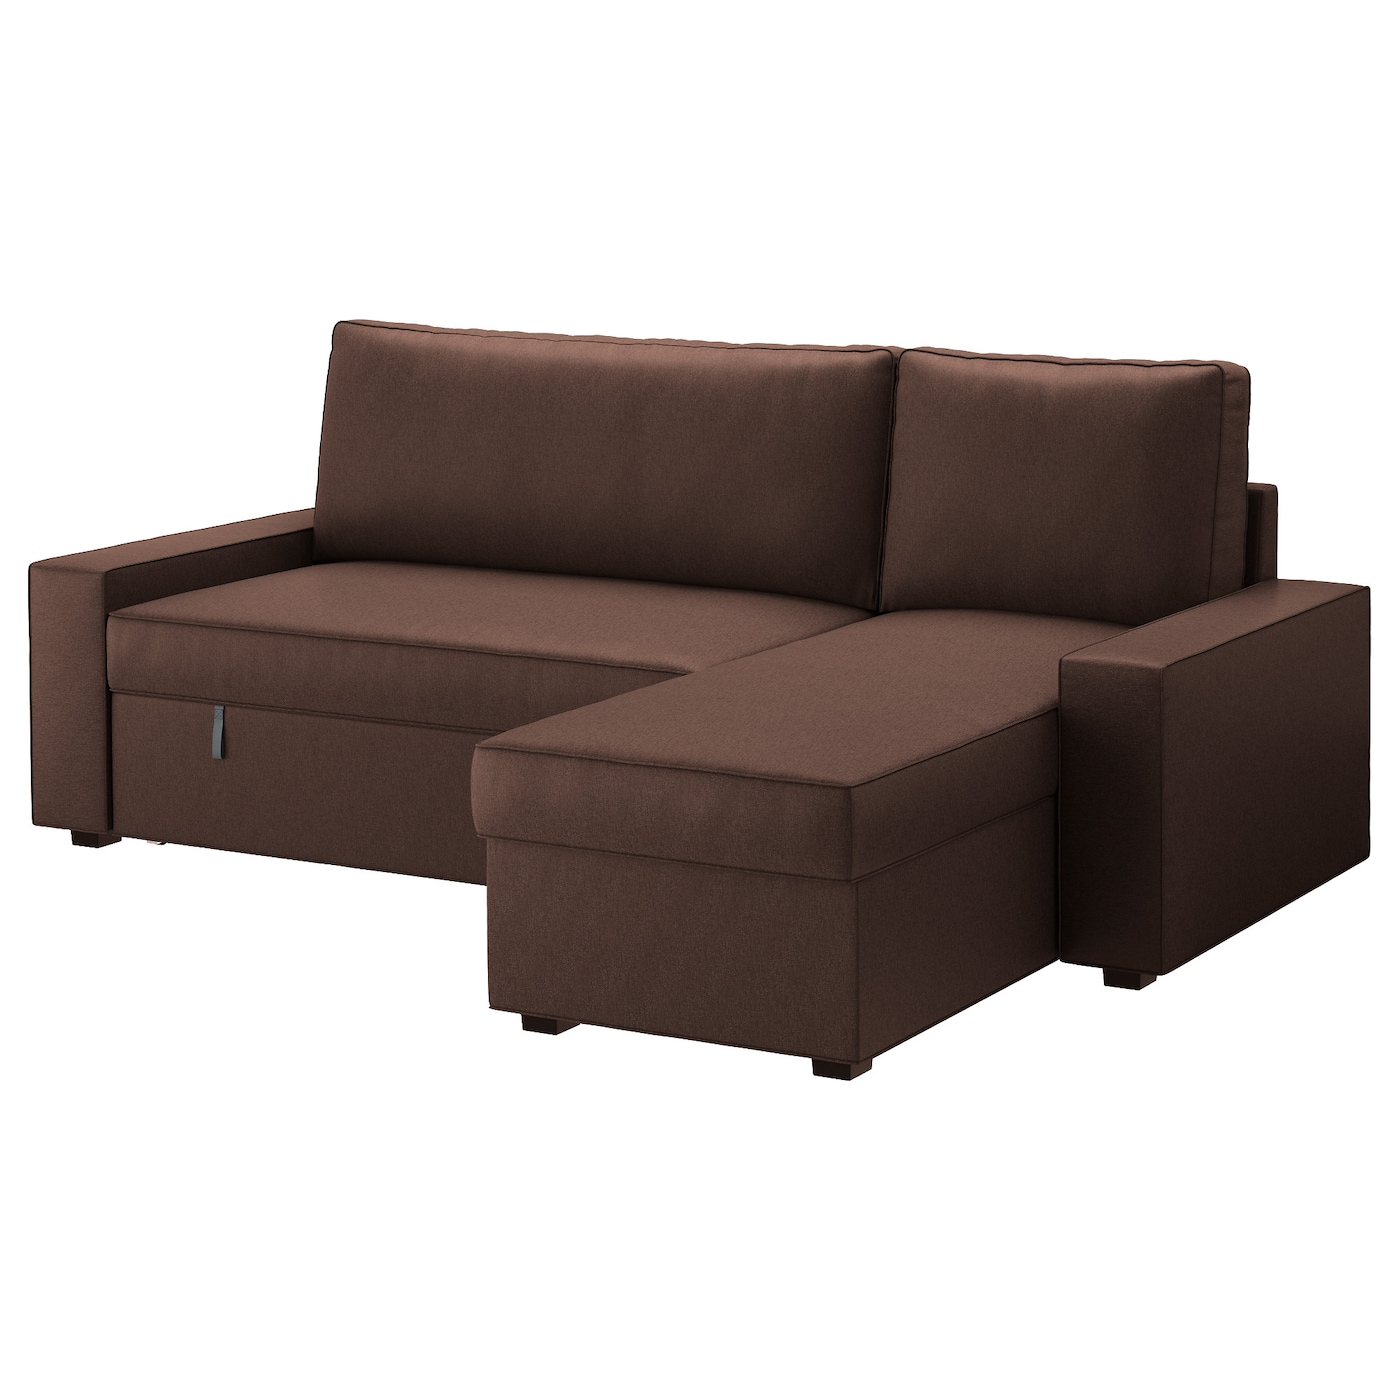 Vilasund sofa bed with chaise longue borred dark brown ikea for Sofas baratos asturias